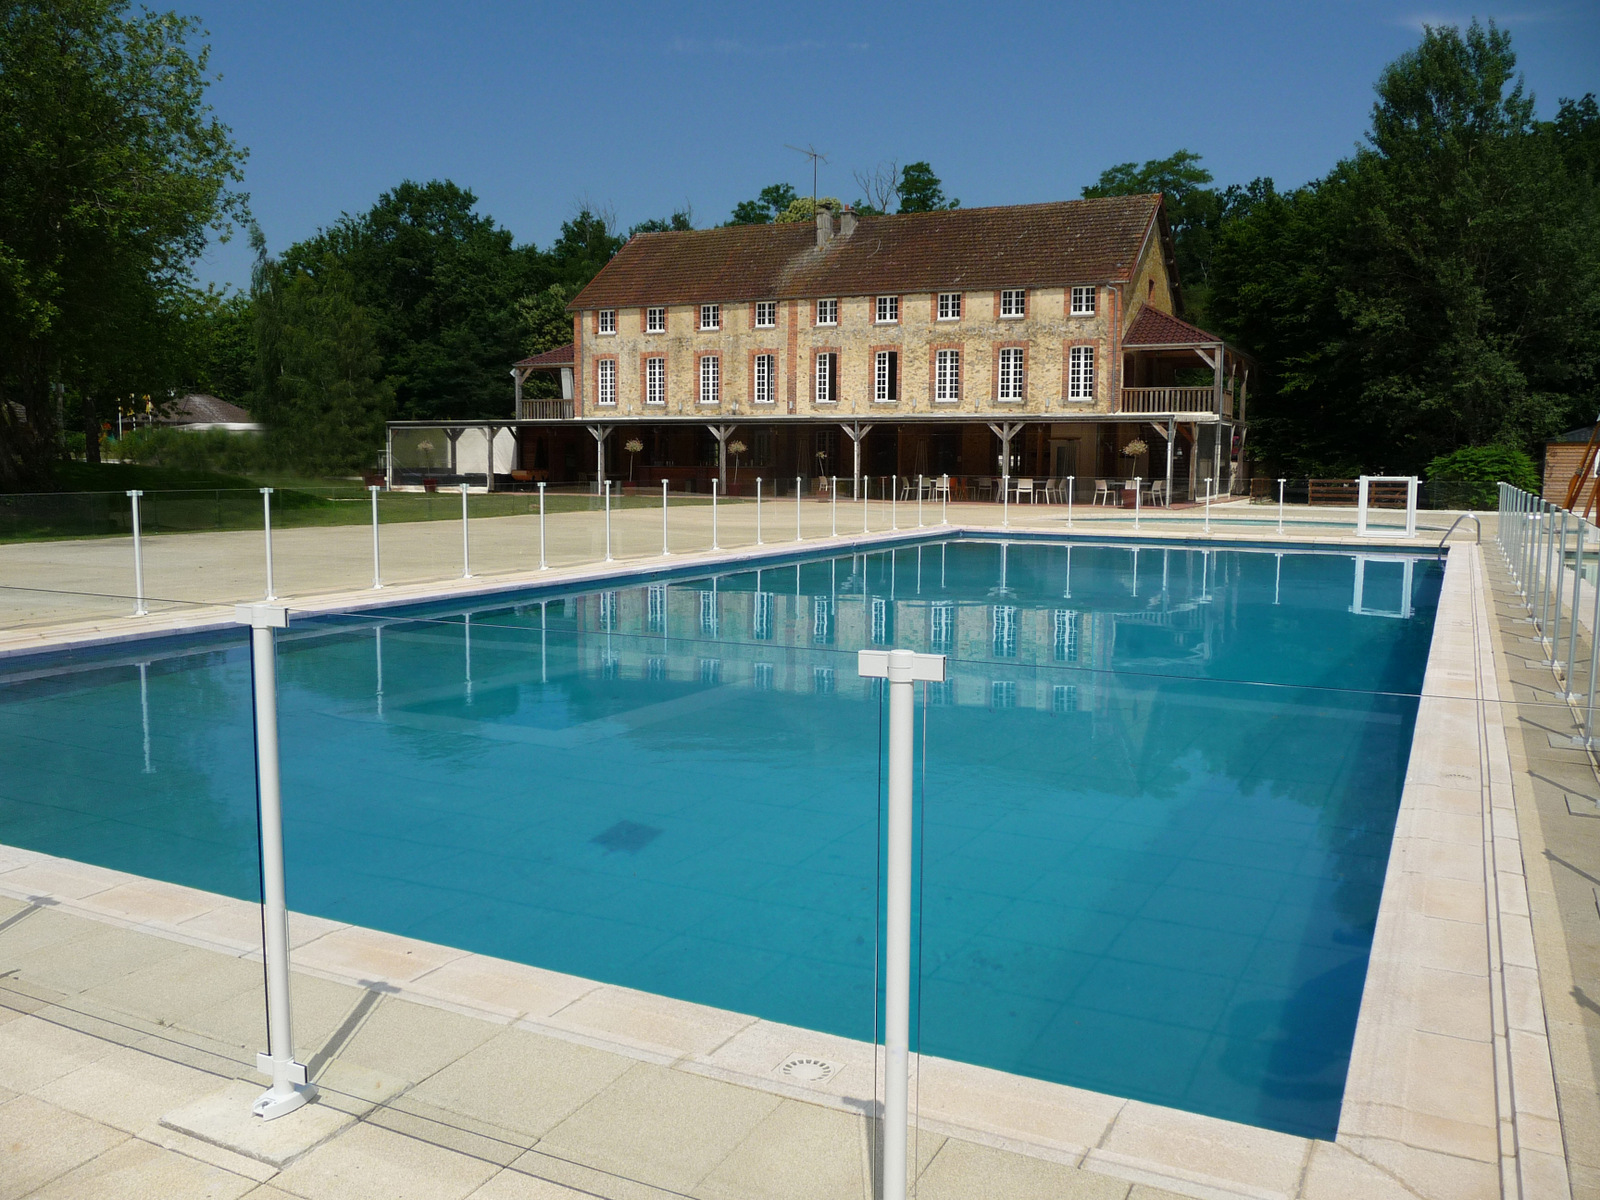 D co barriere piscine verre saint denis 27 barriere for Barriere piscine plexiglass